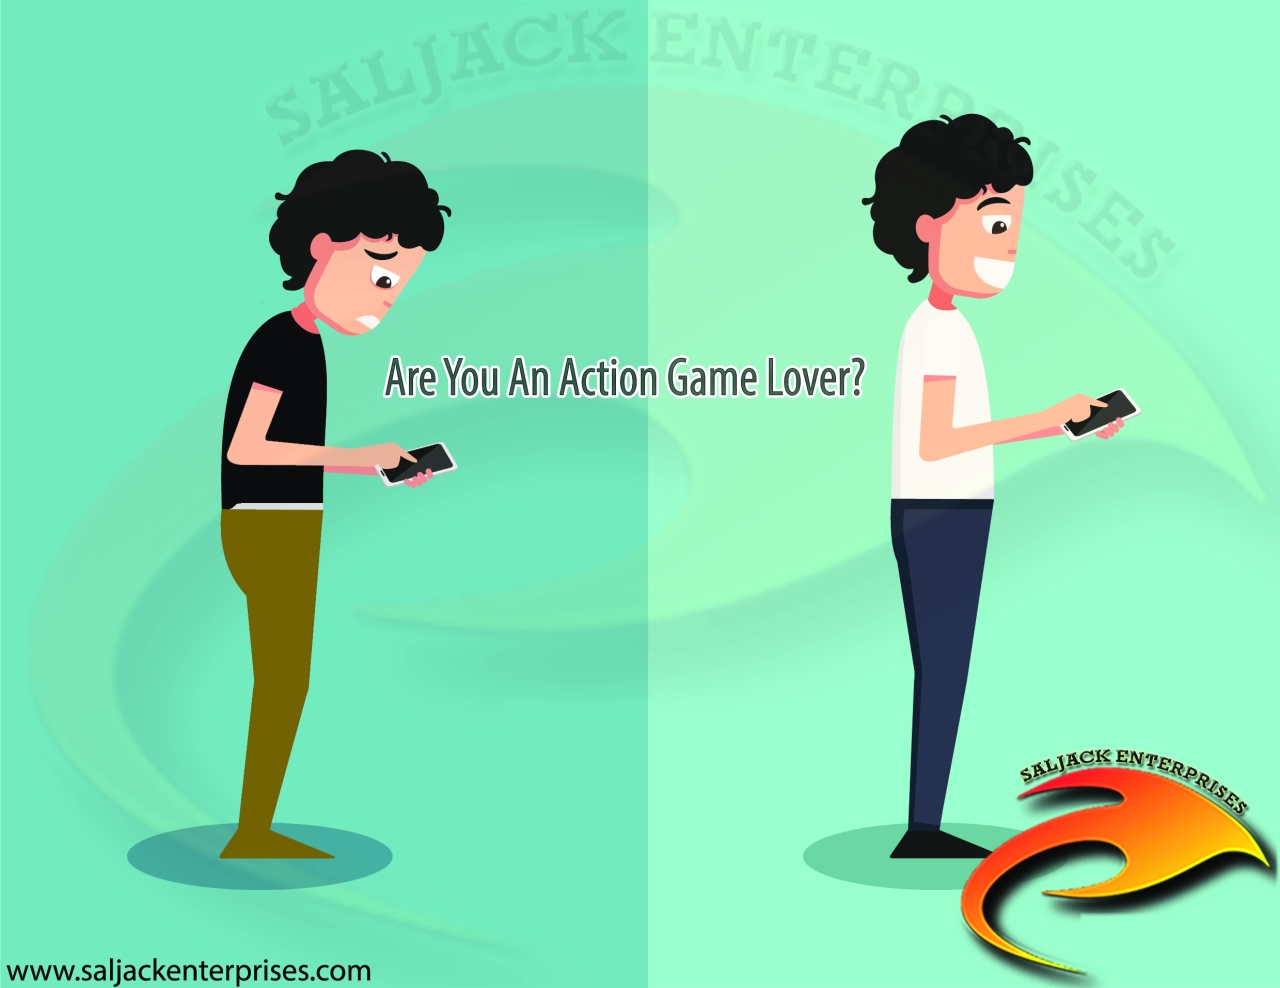 Do Action Games Turn You Off Or On? Presented by Saljack Enterprises